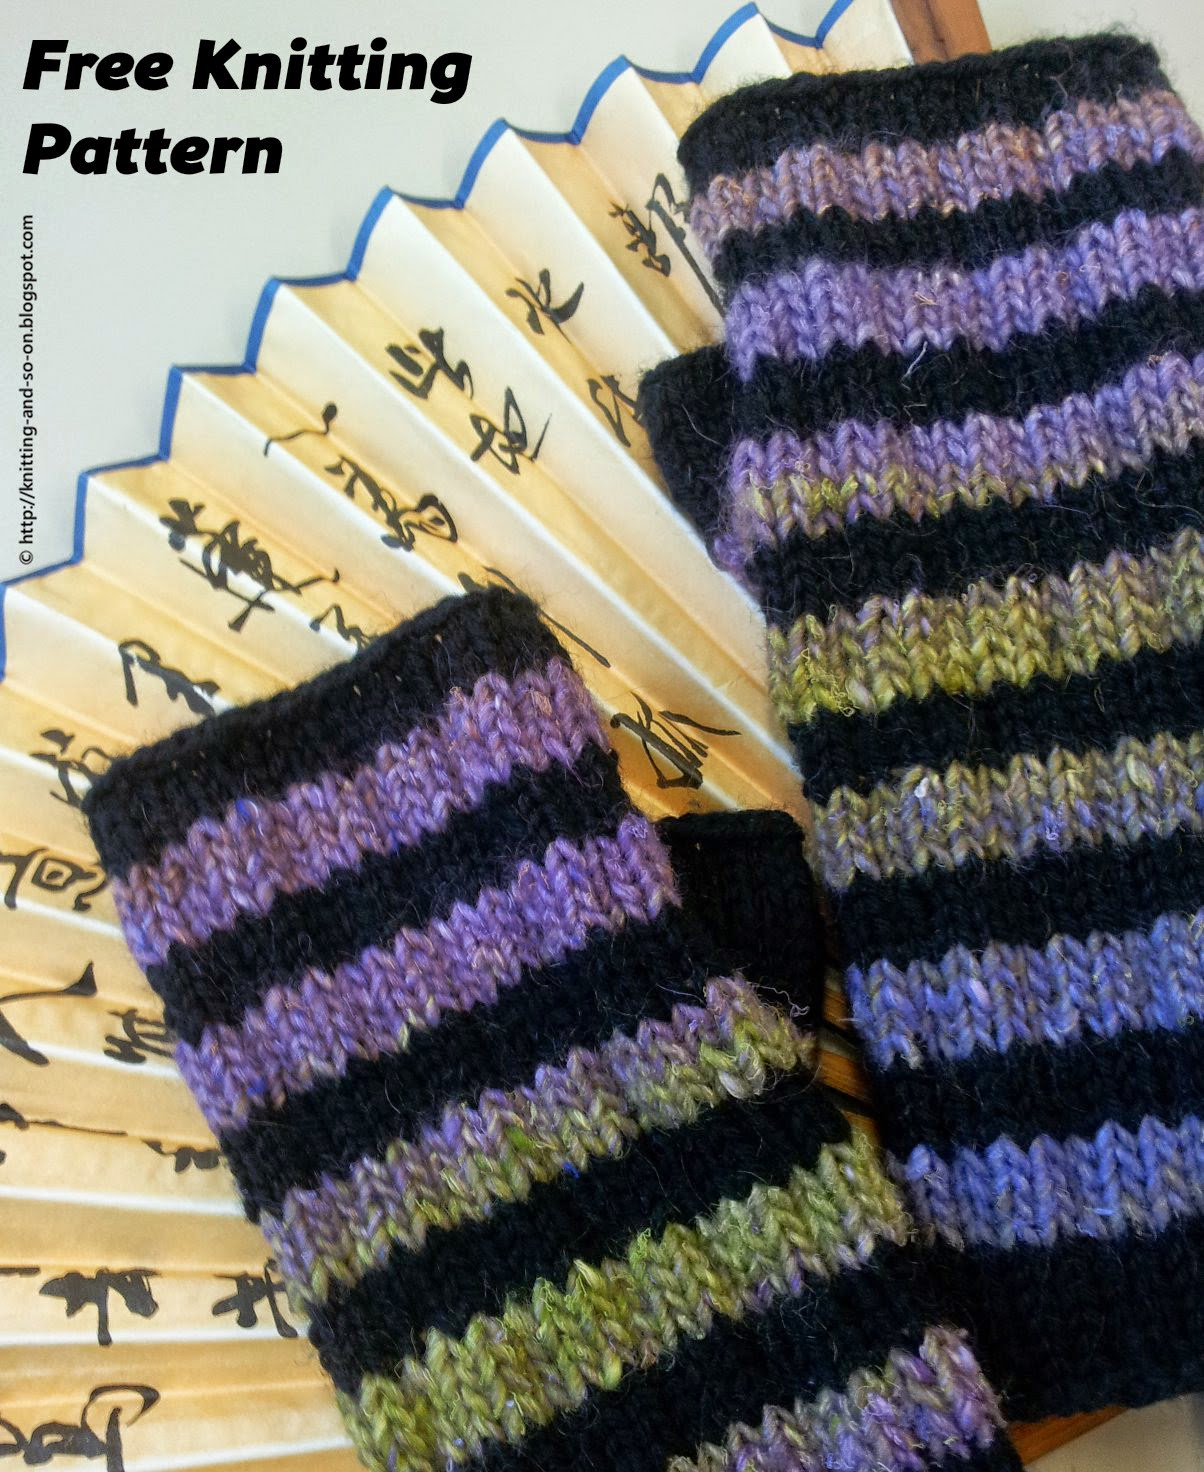 Free Knitting Pattern - Striped Fingerless Gloves